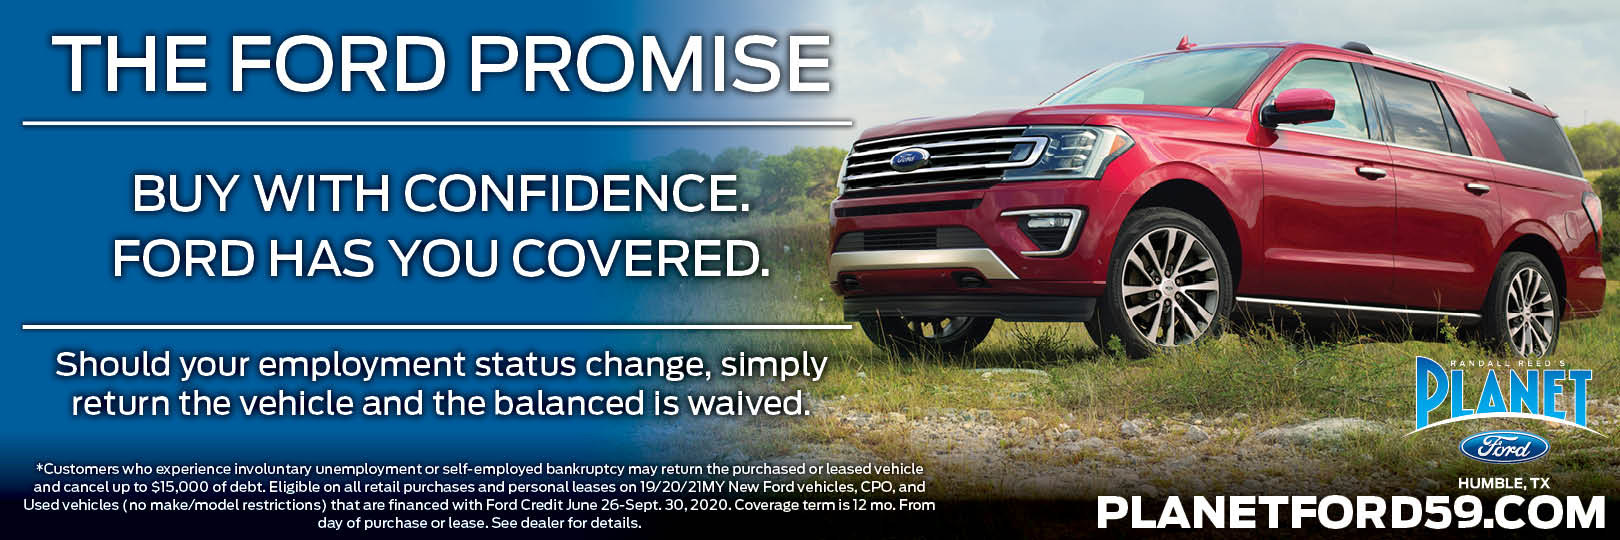 200630 Site Ford Promise32